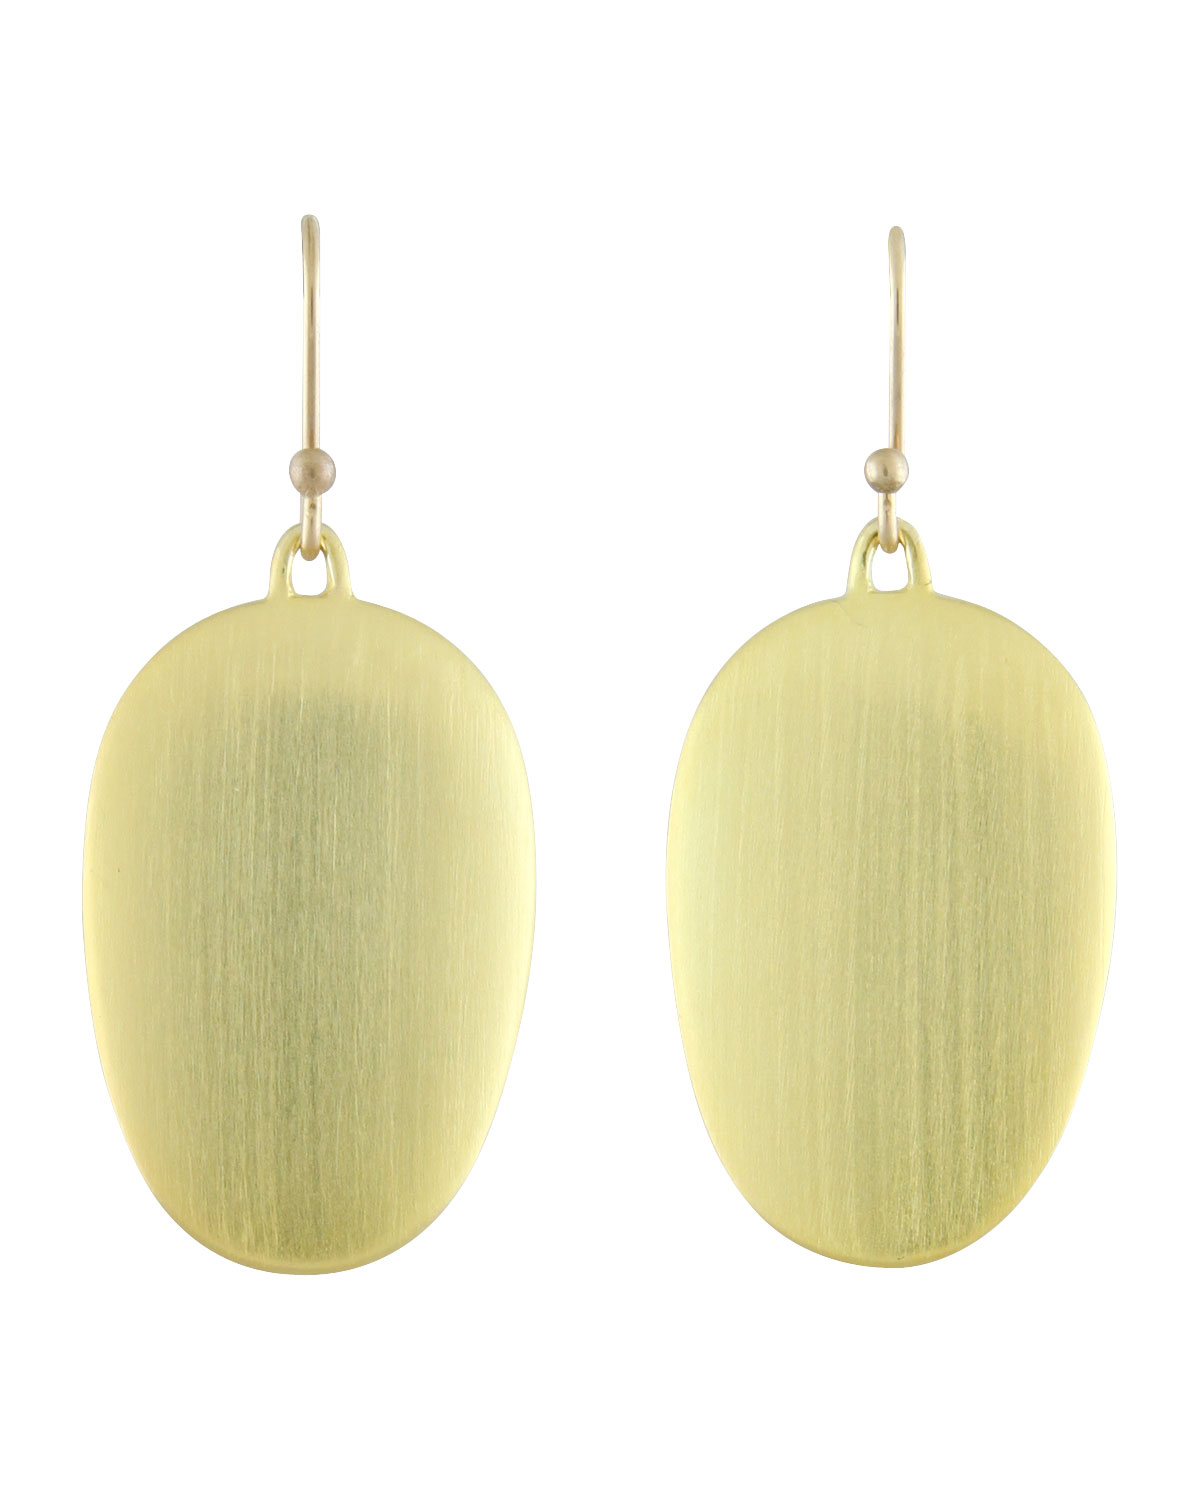 TED MUEHLING LARGE BRUSHED GREEN GOLD CHIP EARRINGS